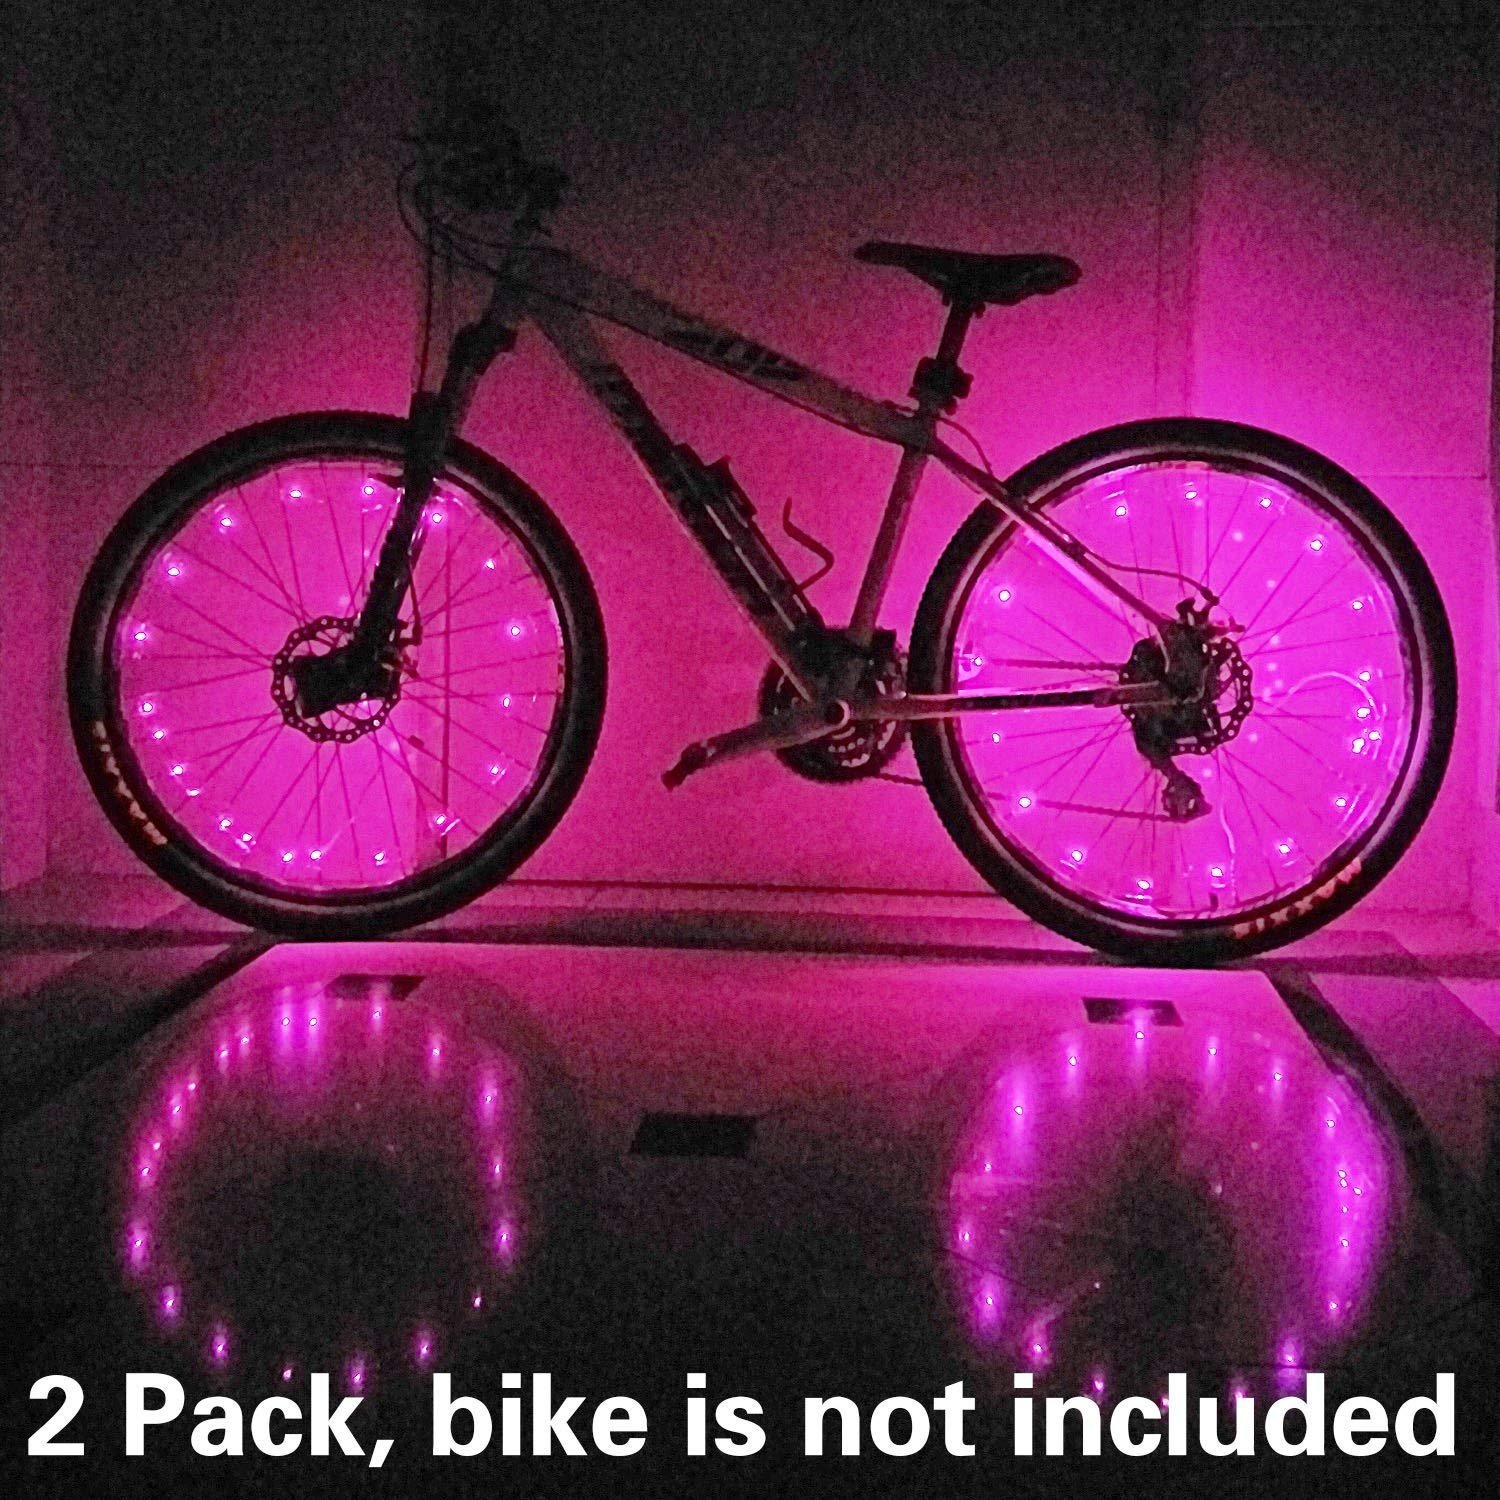 2 Pack Waterproof Bright Bicycle Tire Light Strip, Safety Spoke Lights, Cool Bike Accessories, Light Up Wheels, Safer Bicycle Spokes & Rims Light - Easy to install, No tools Needed,(2 Tiers Pack) by Cozy Homy (Image #9)